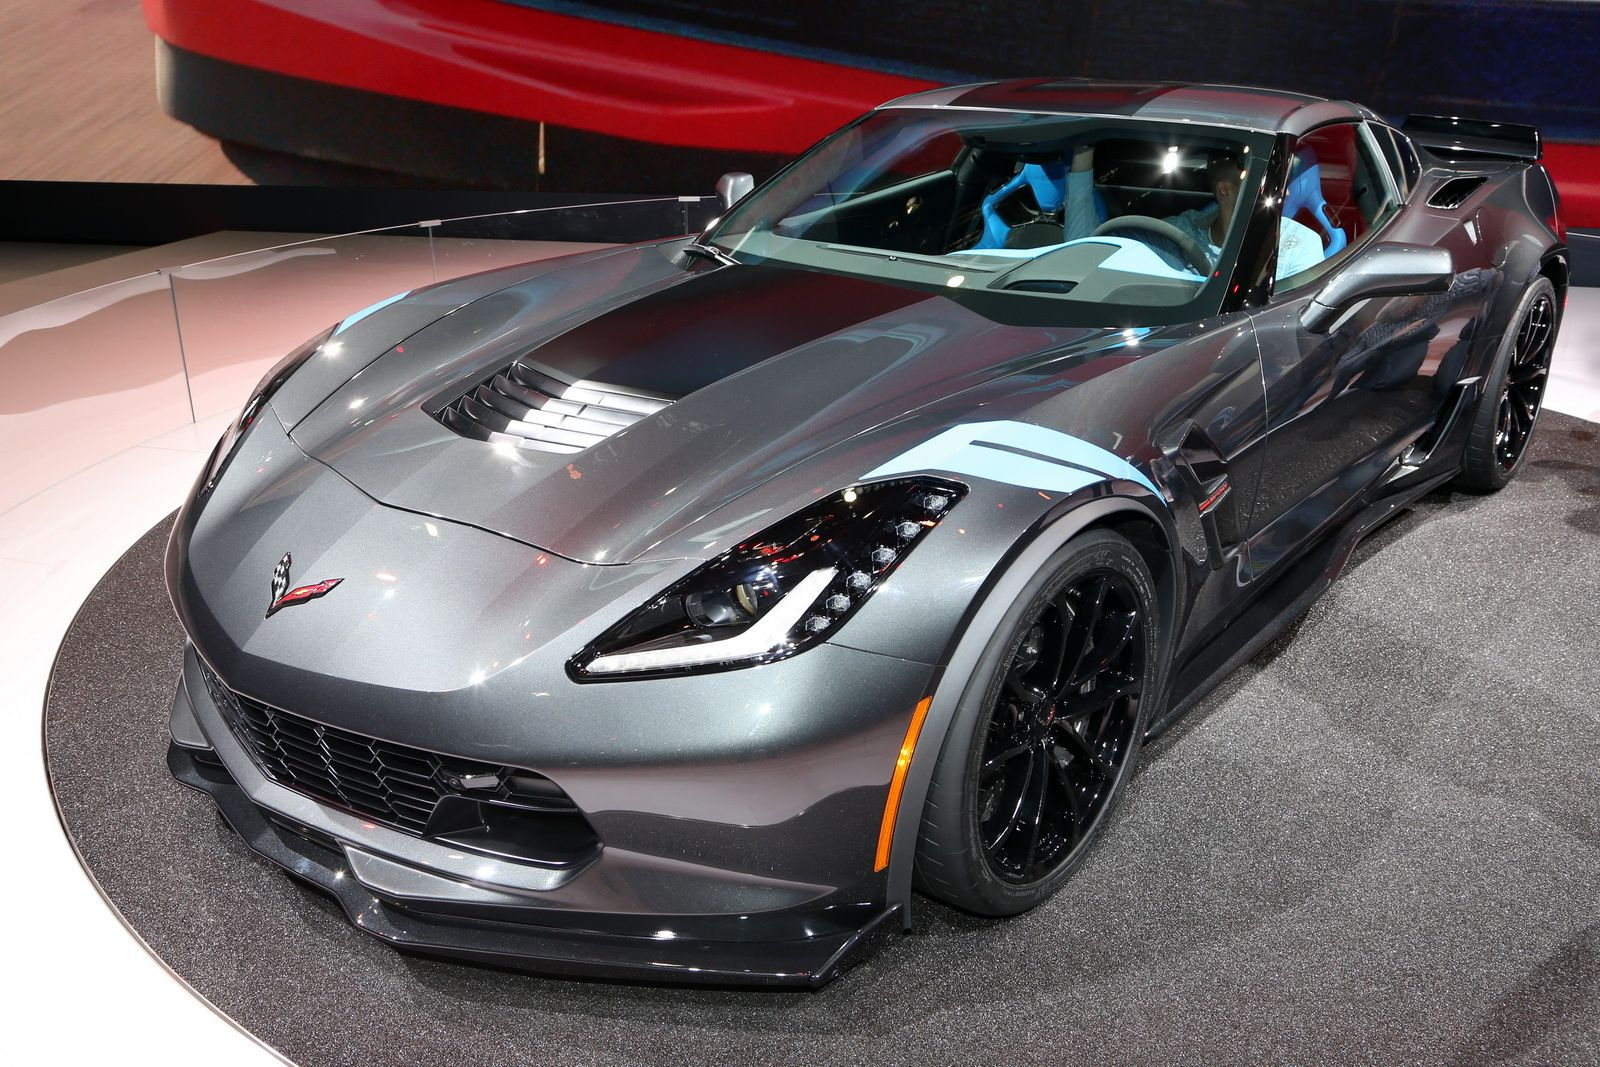 New 2017 Corvette Grand Sport Brings Zo6 Goos To Stingray For 66 445